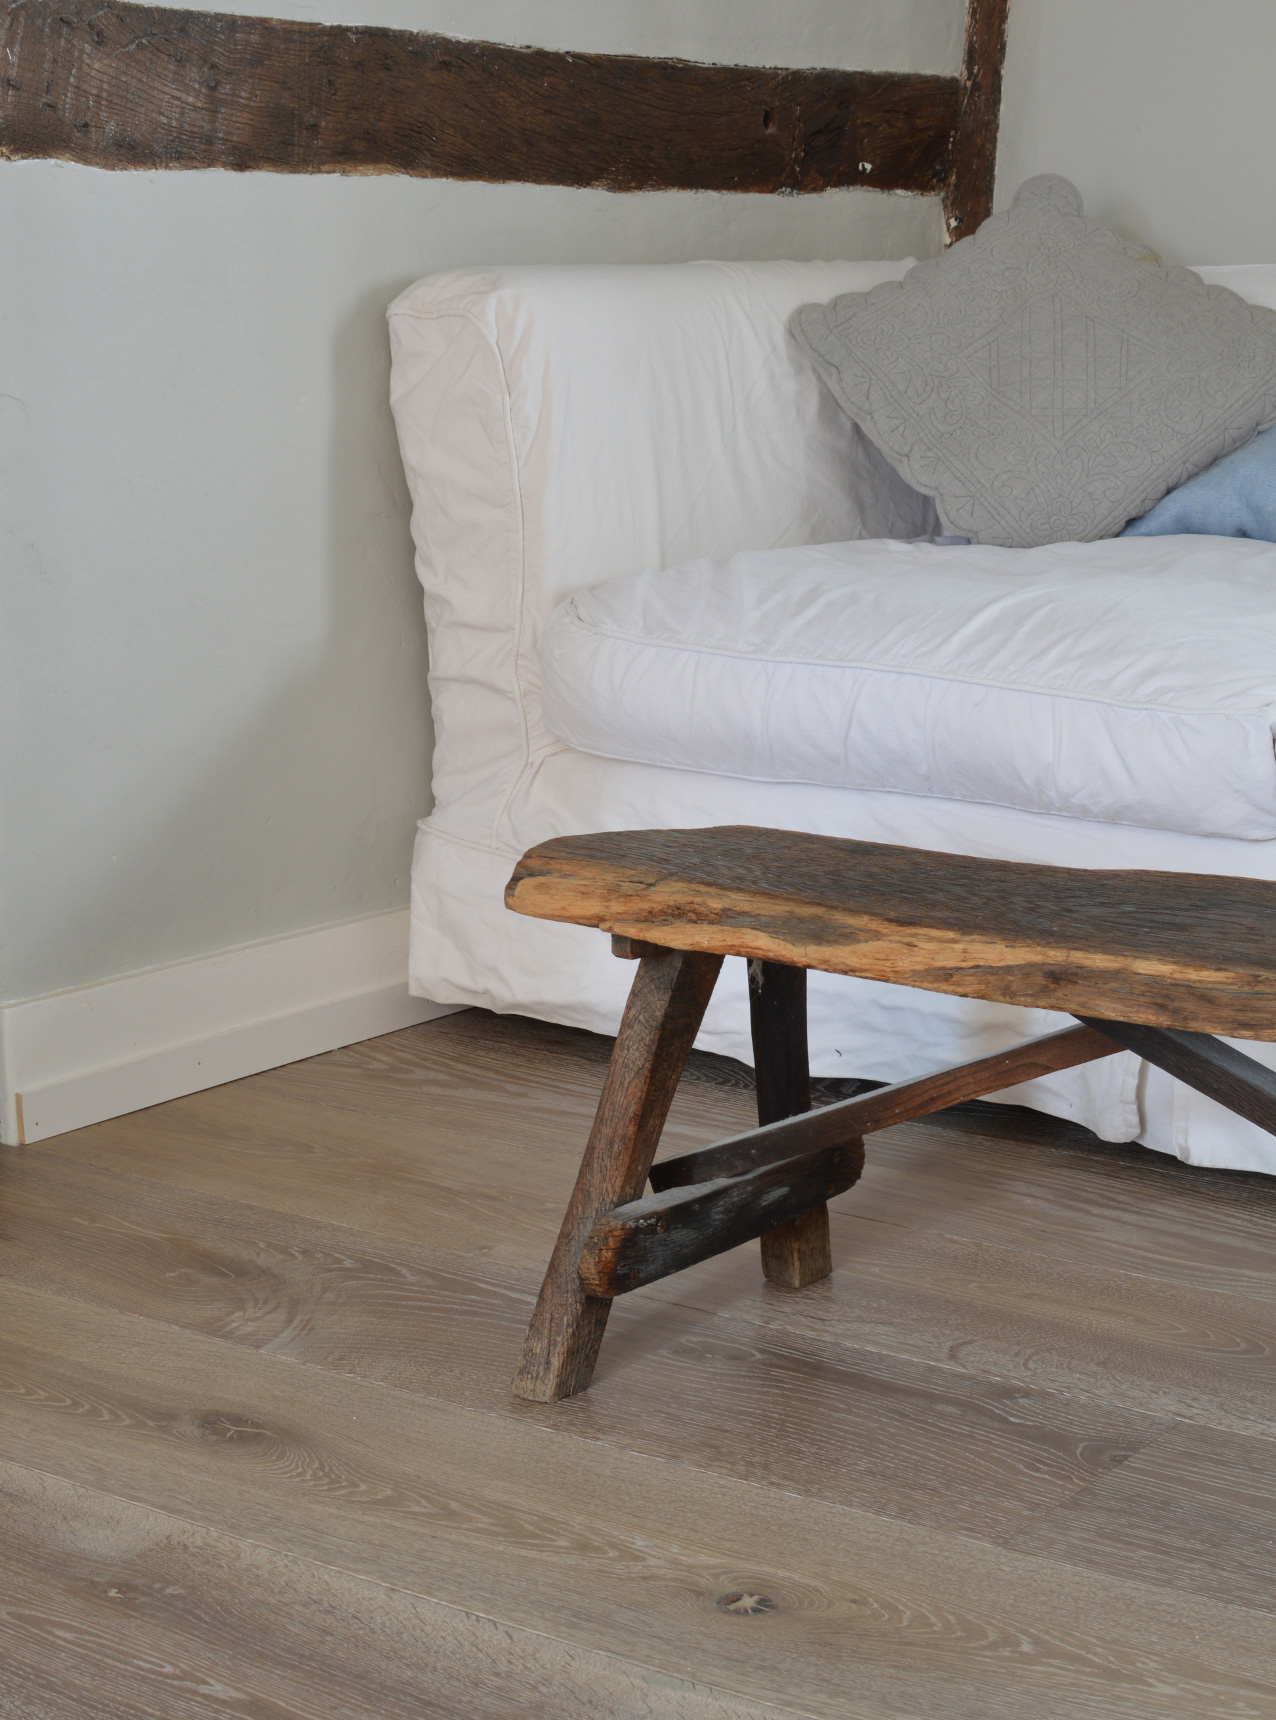 Oak landmark dyrham planks with a white sofa and wooden bench